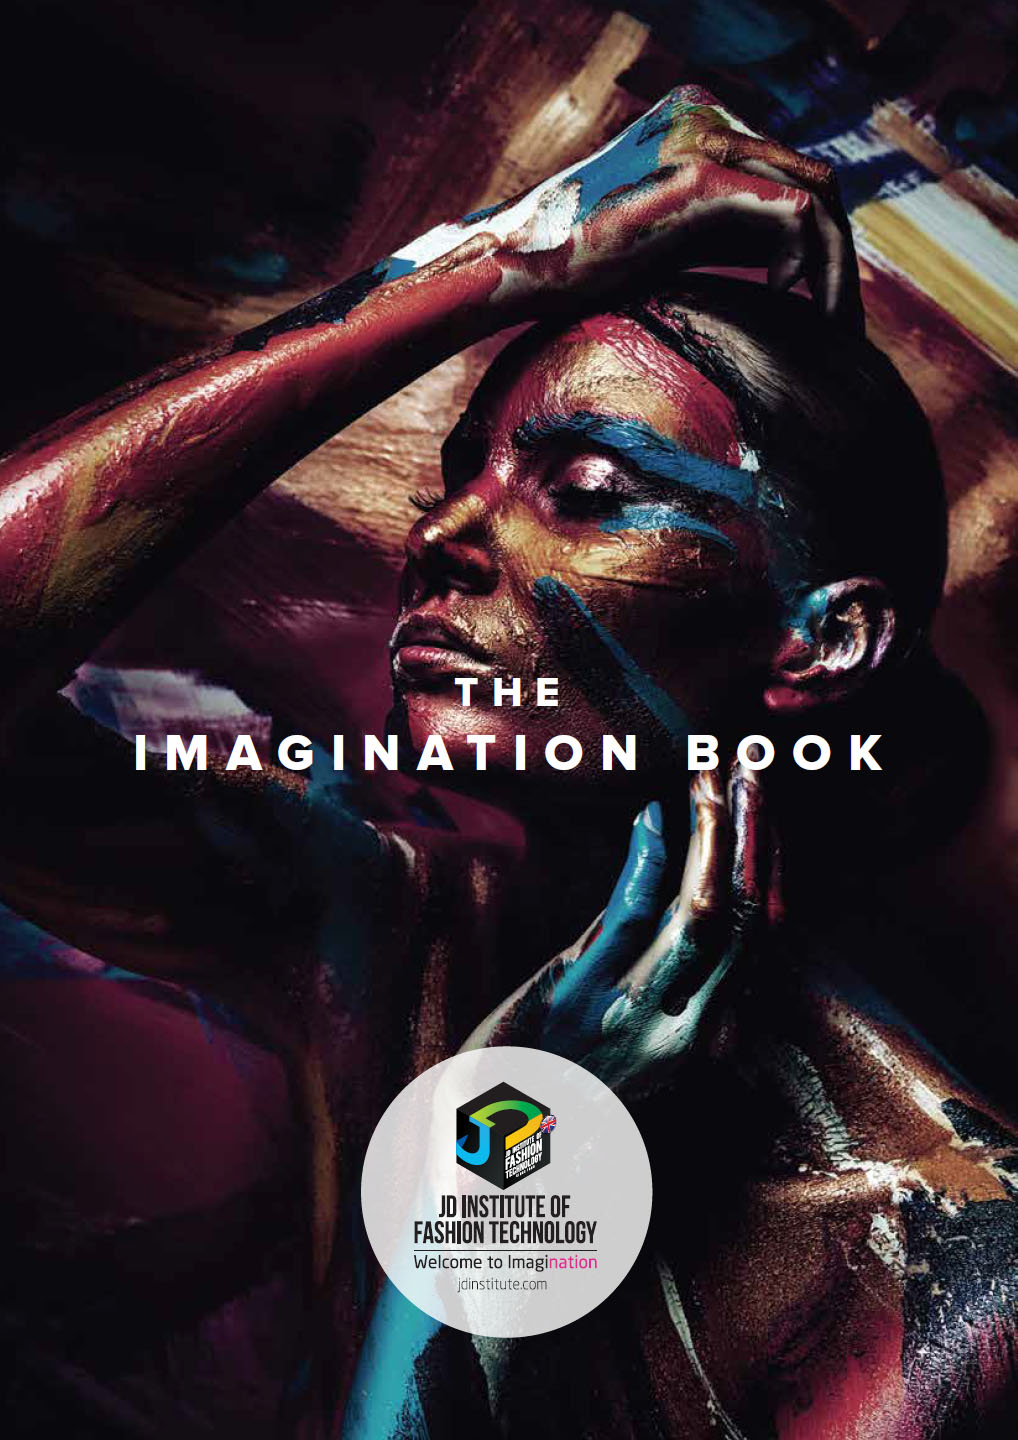 best college for fashion designing - Imagination Book 2016 Cover - Imagination Books